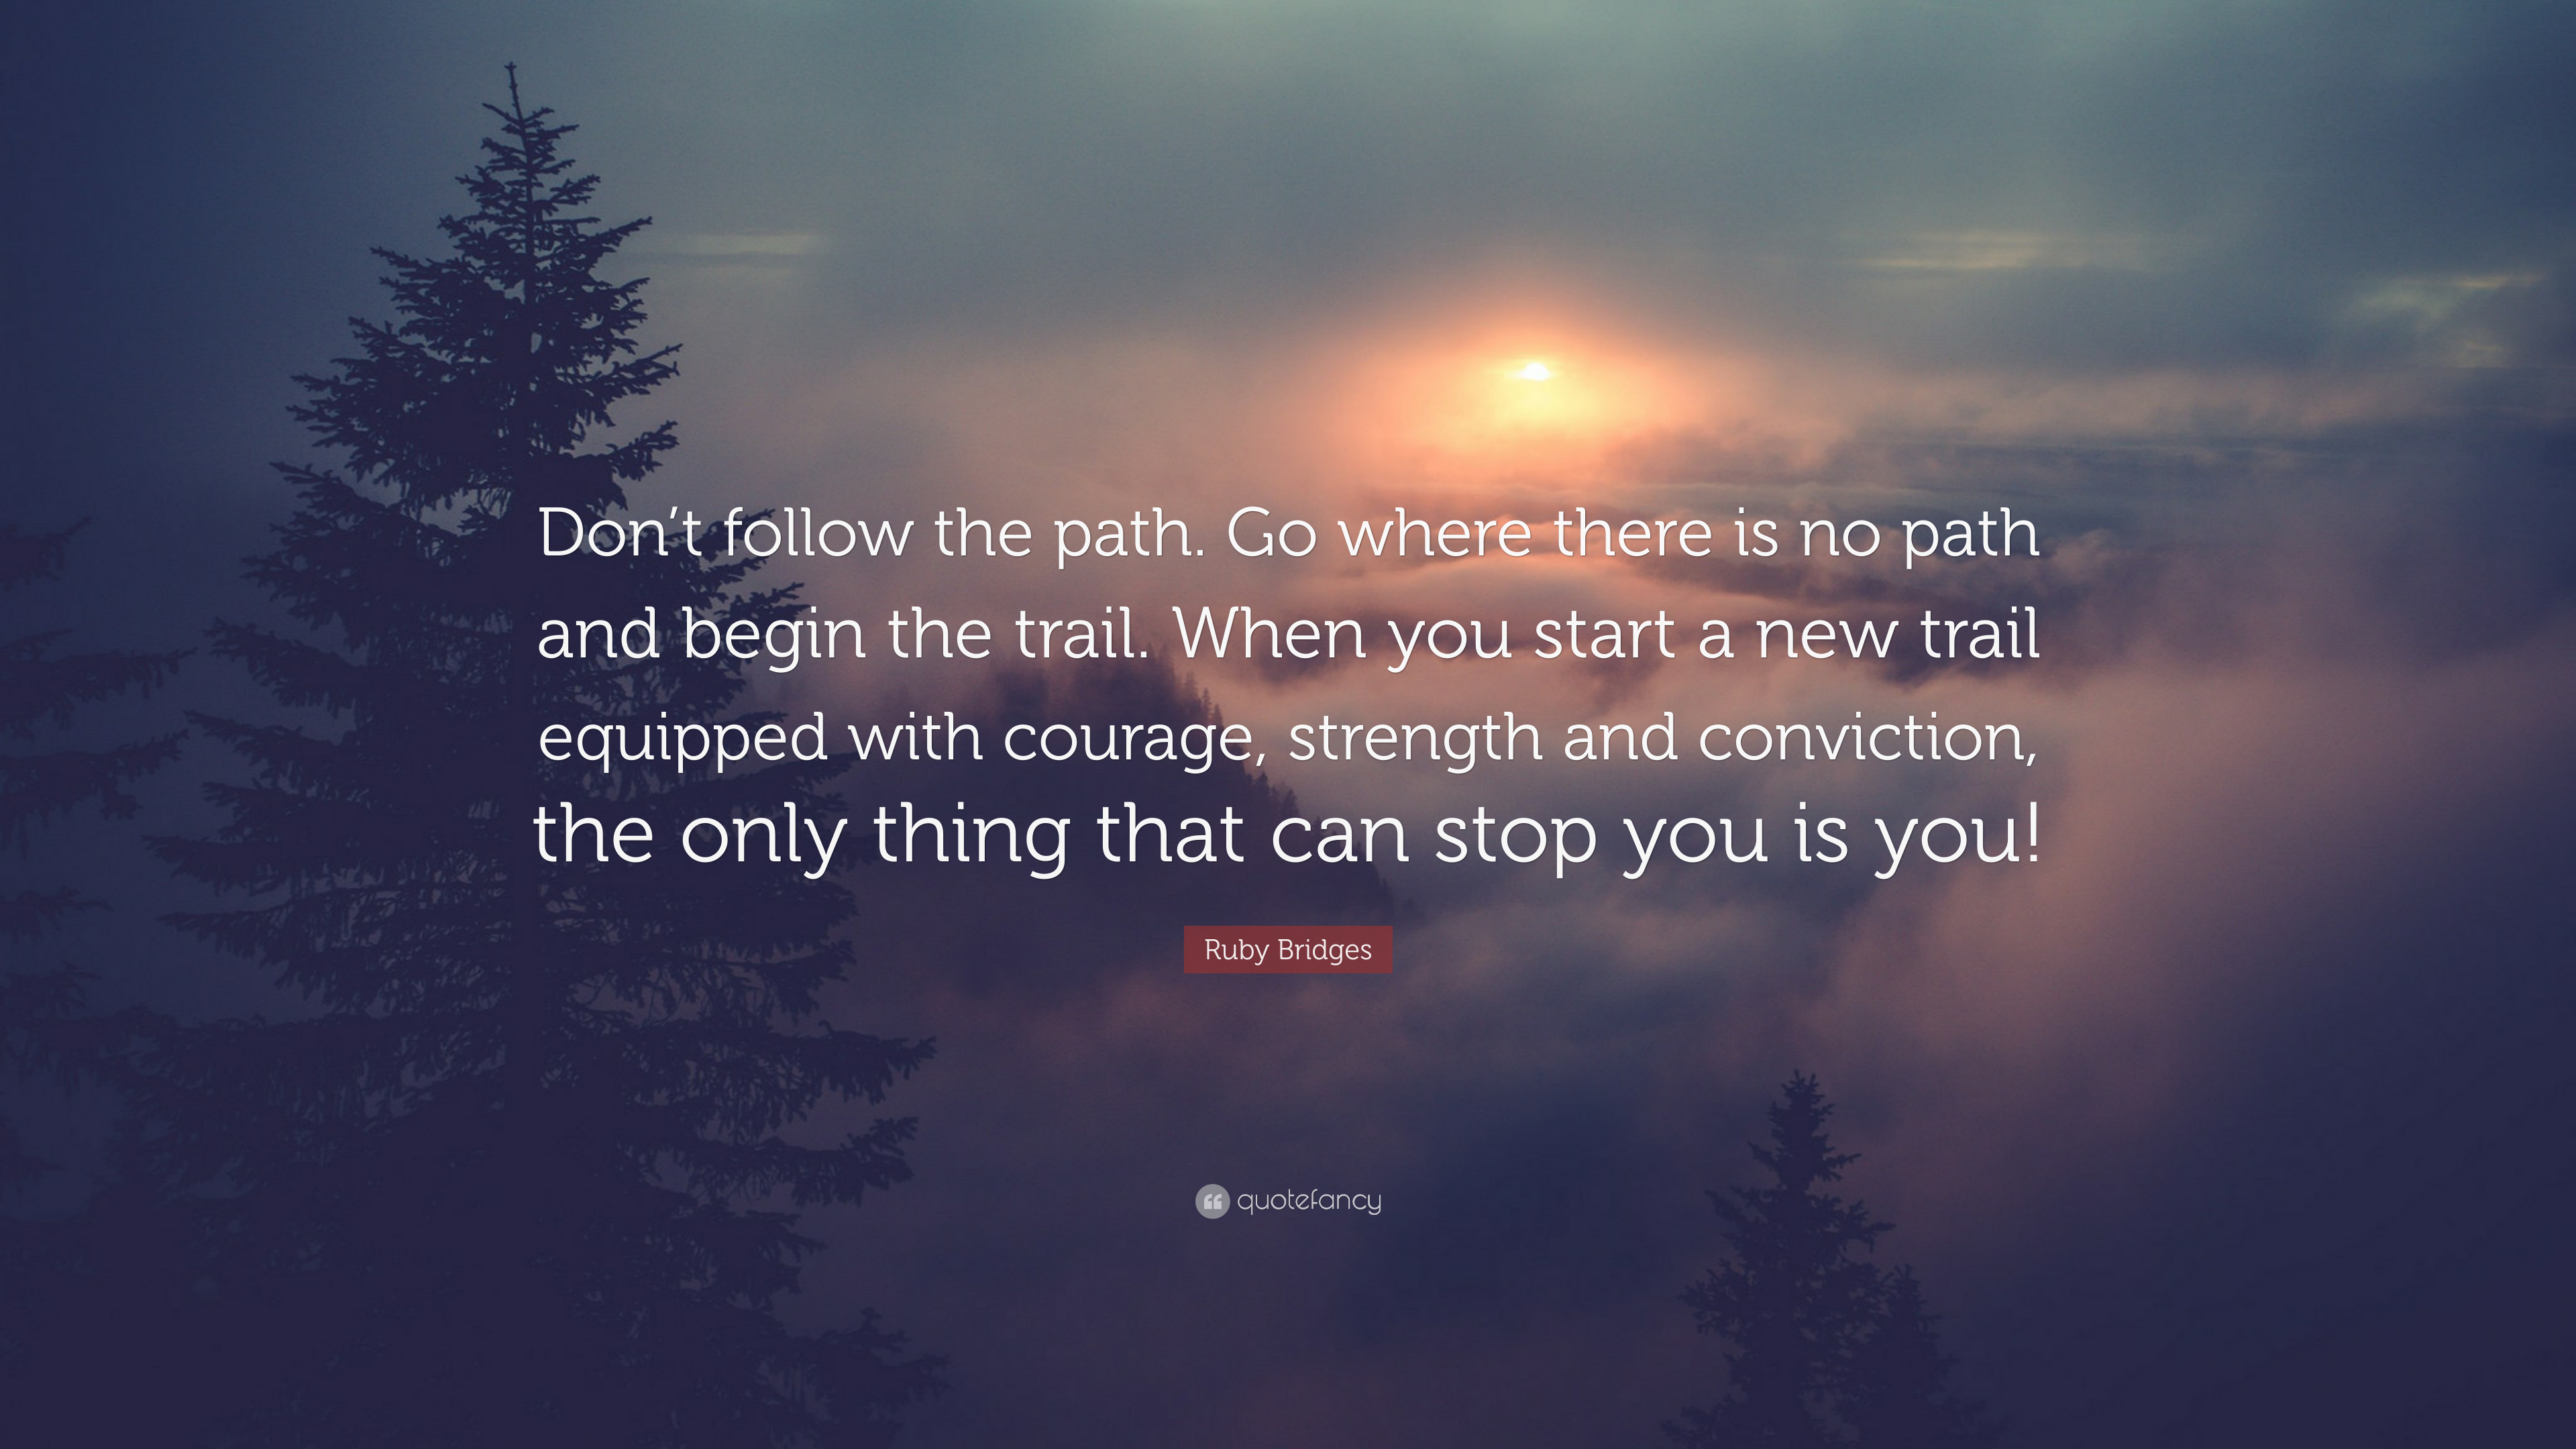 The path that you can go in one life 74